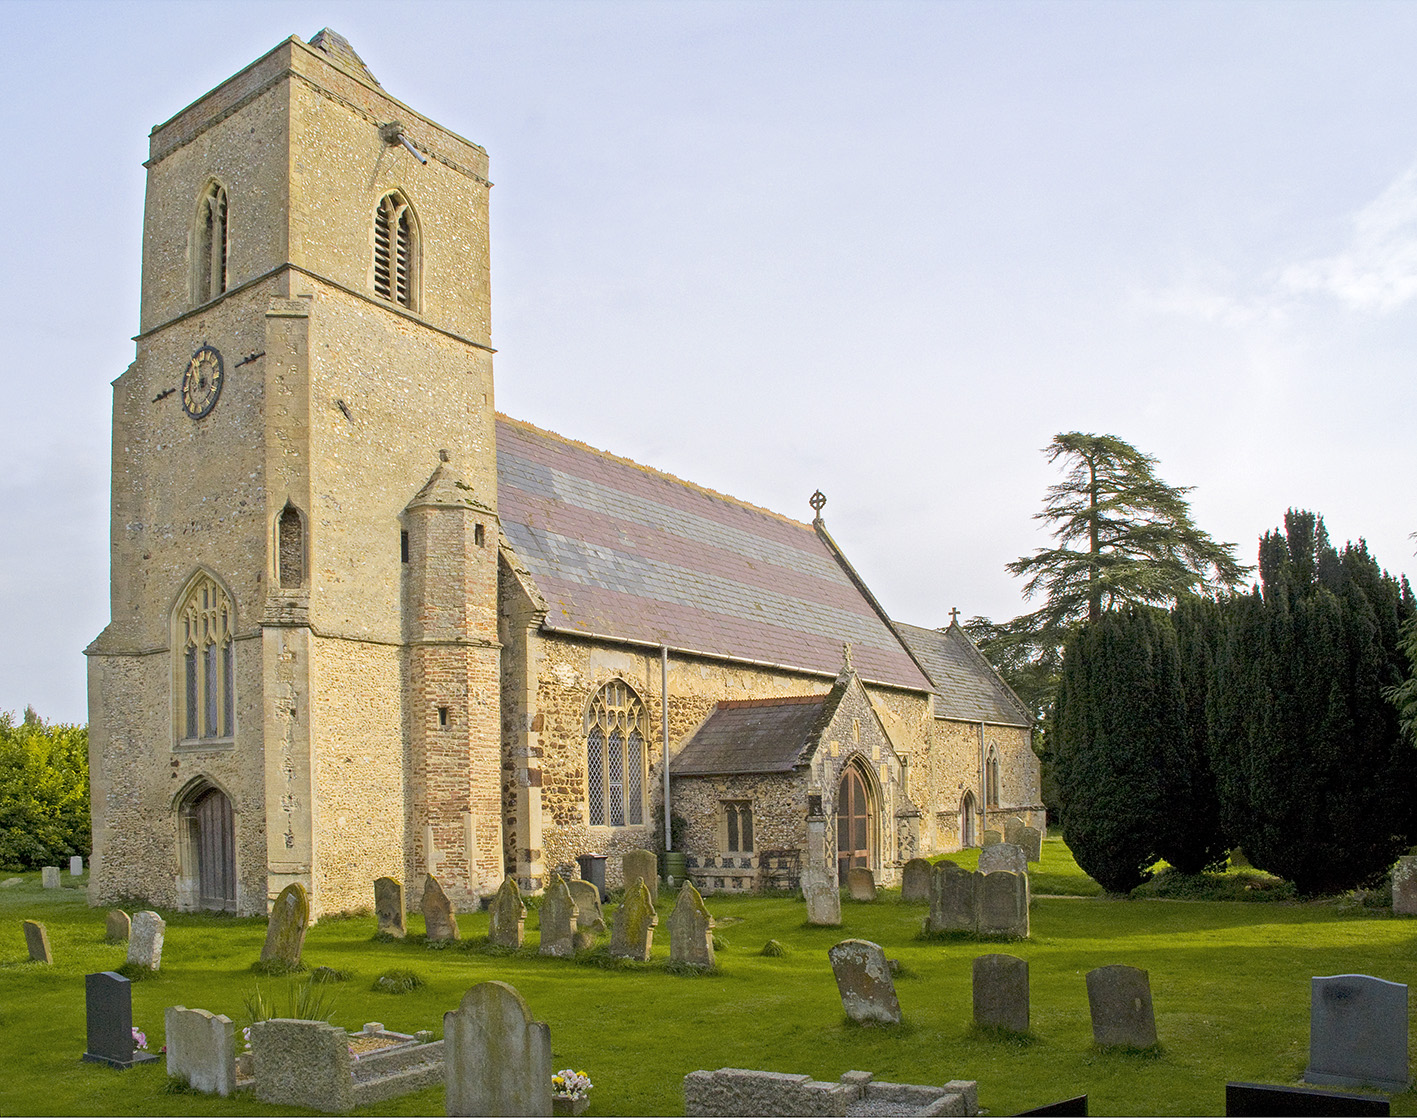 St Andrews' Church, photographed in 2008.